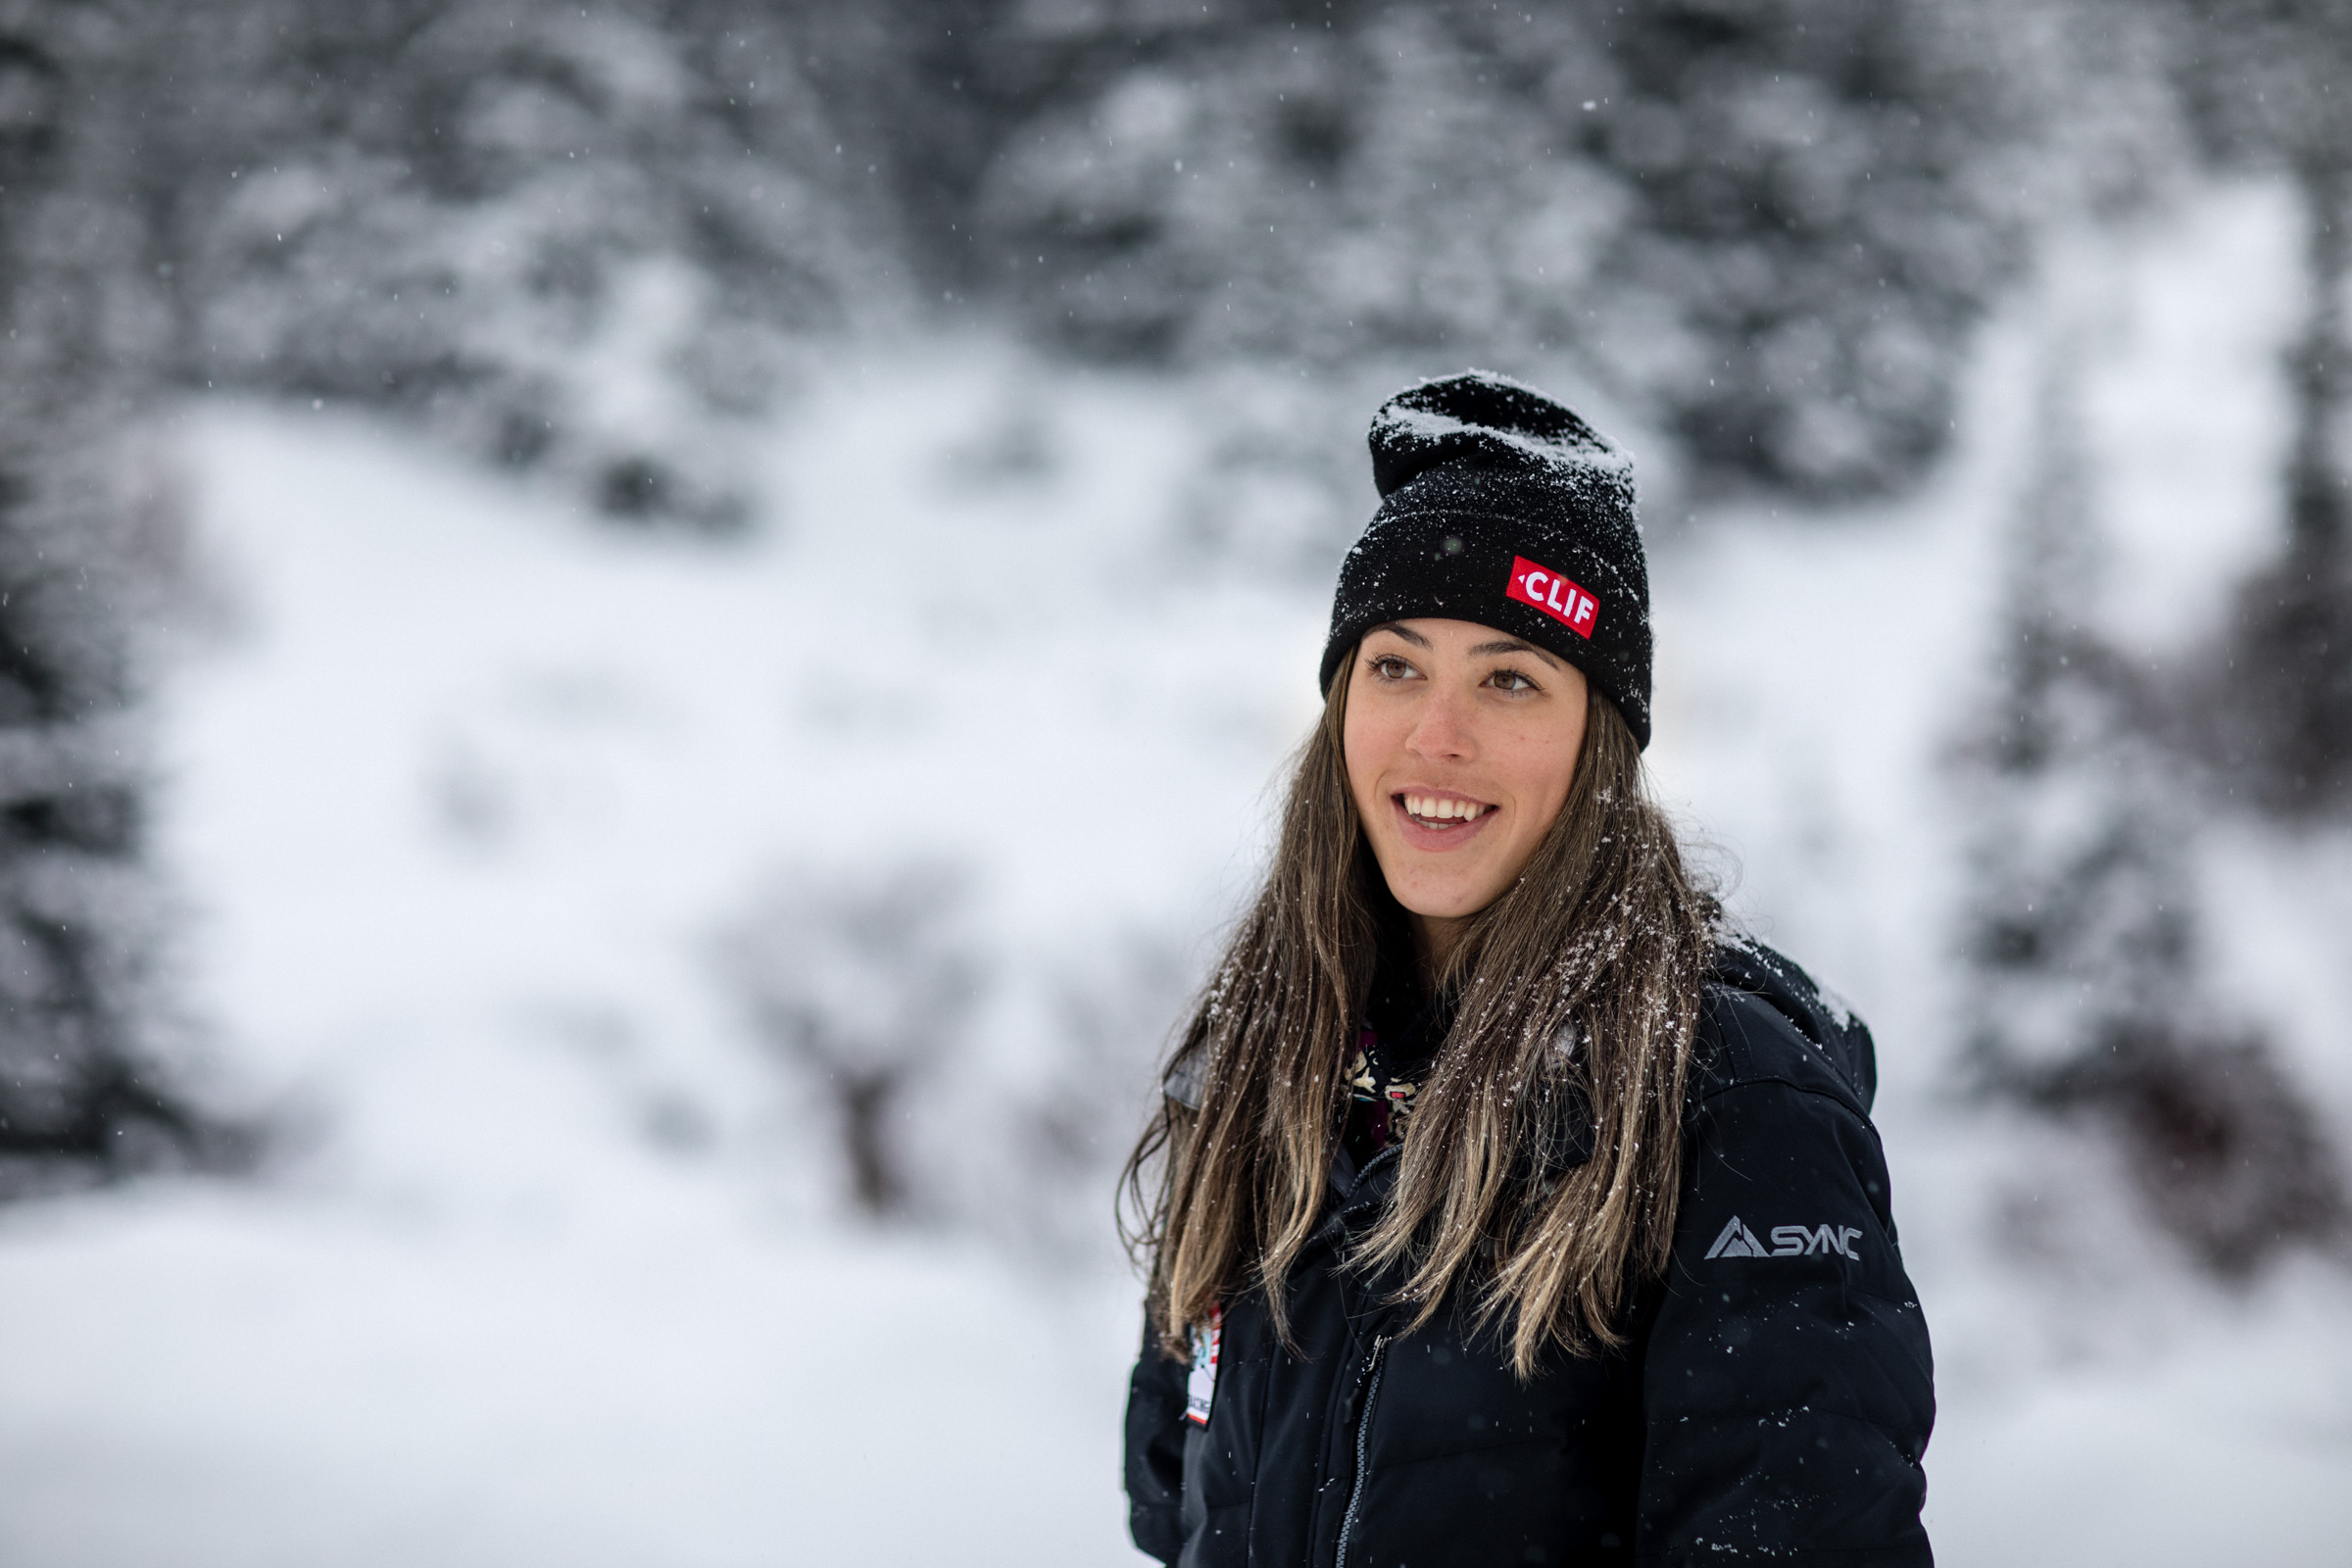 Isabella Wright seen in a Clif photo shoot Arapahoe Basin, Colorado. (Photo:{ }Christian Pondella)